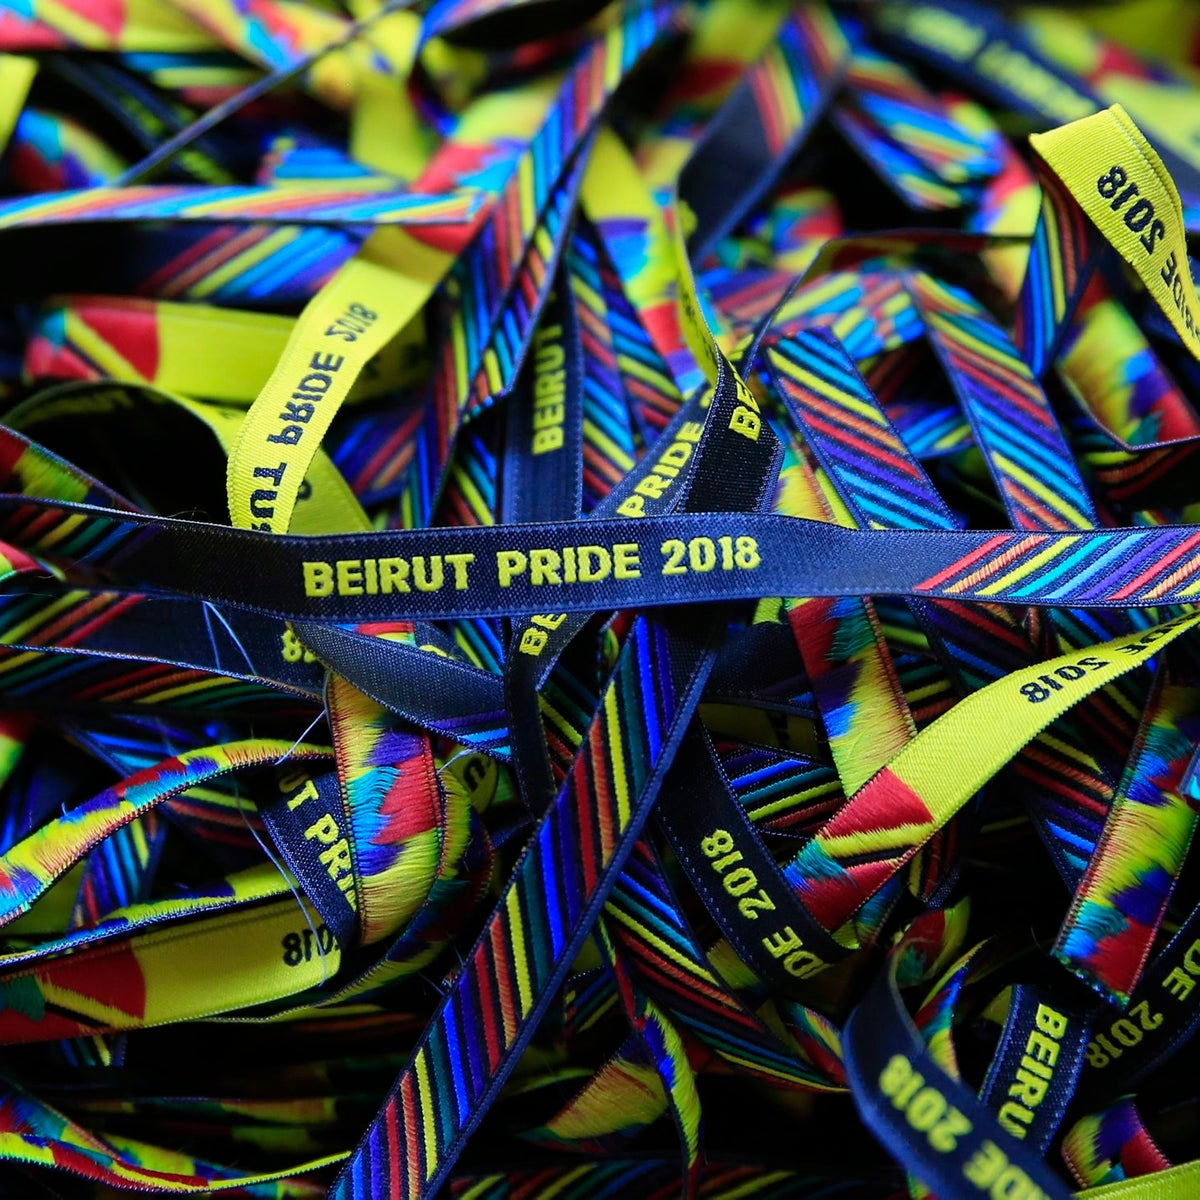 In this picture taken Saturday, May 12, 2018, bracelets decorated with the rainbow colors are displayed at a restaurant during the launch event of Beirut Pride week in Beirut, Lebanon.  Lebanonג€™s relative tolerance emerges in part from its sectarian and ethnic diversity. Despite tensions, no one group is strong enough to impose its will, and people are forced to recognize others to a degree. That has opened up a greater freedom of press, expression and activism than elsewhere in the region.